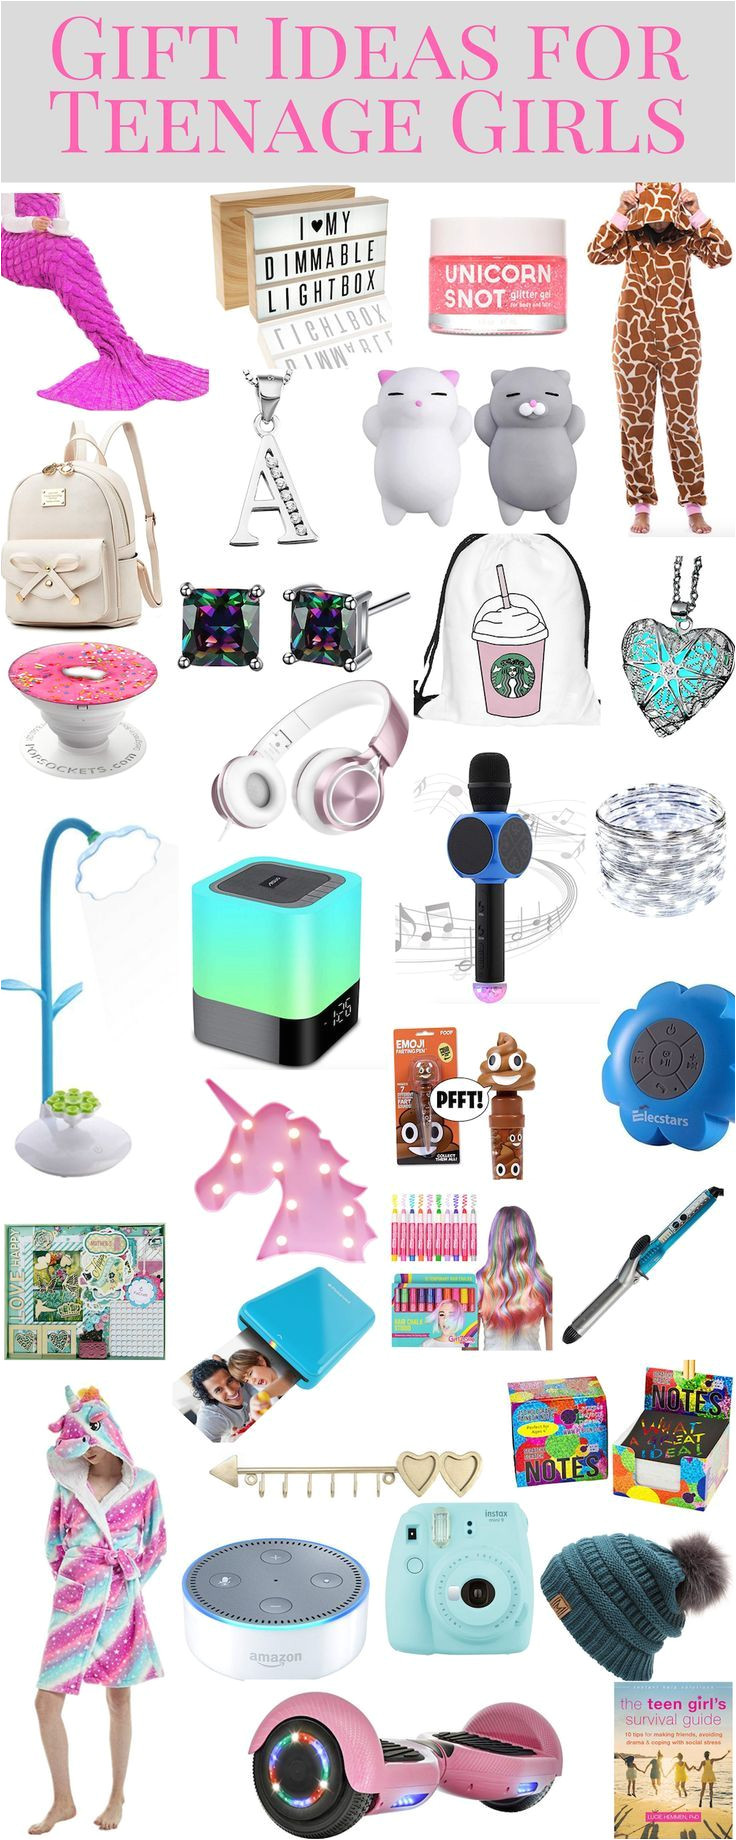 gift ideas for teenage girls and tween girls does your teen girl love unicorns or girly things or is she more into sports or art